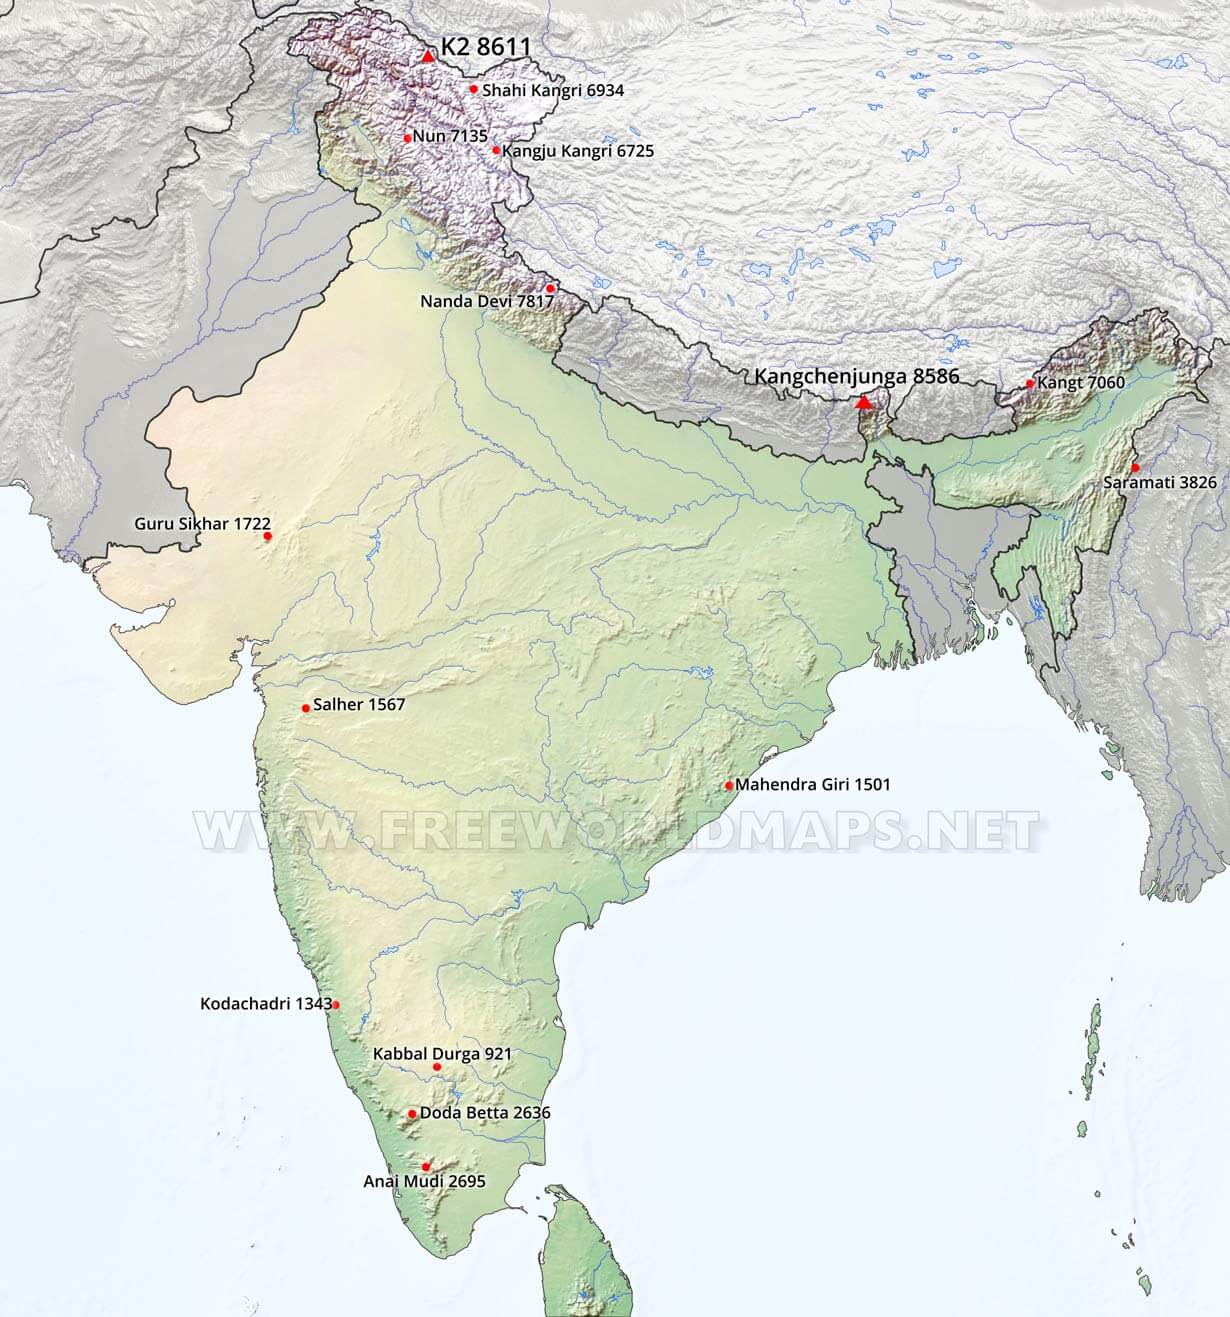 indian physical geography Start studying physical geography - india learn vocabulary, terms, and more with flashcards, games, and other study tools.